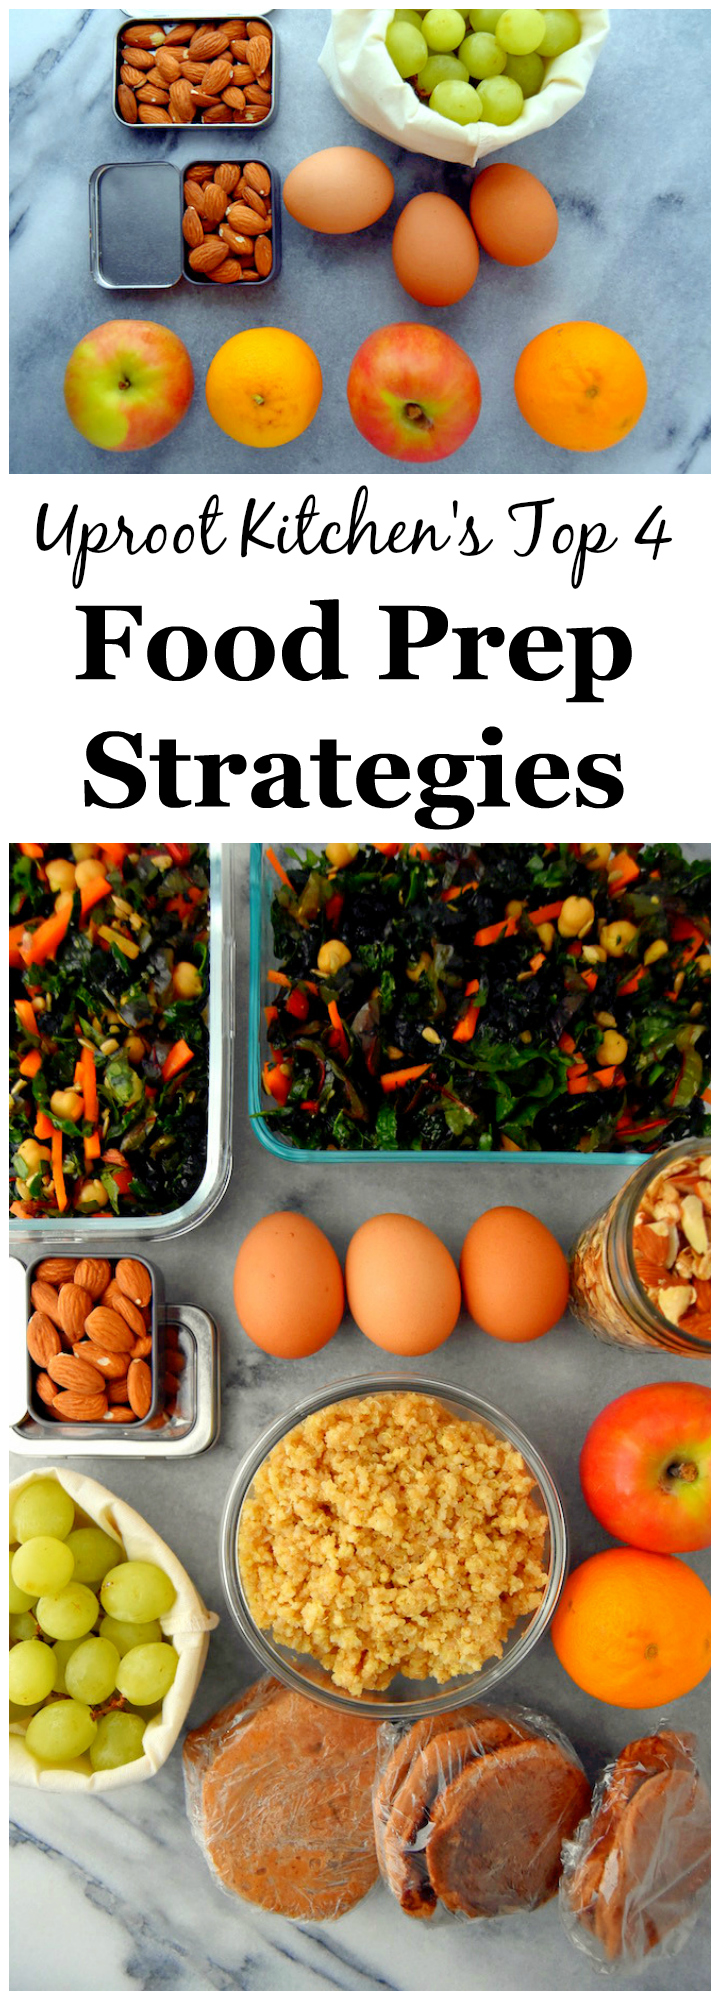 My top 4 Food Prep Strategies for making it through a busy week with healthy food! | uprootkitchen.com